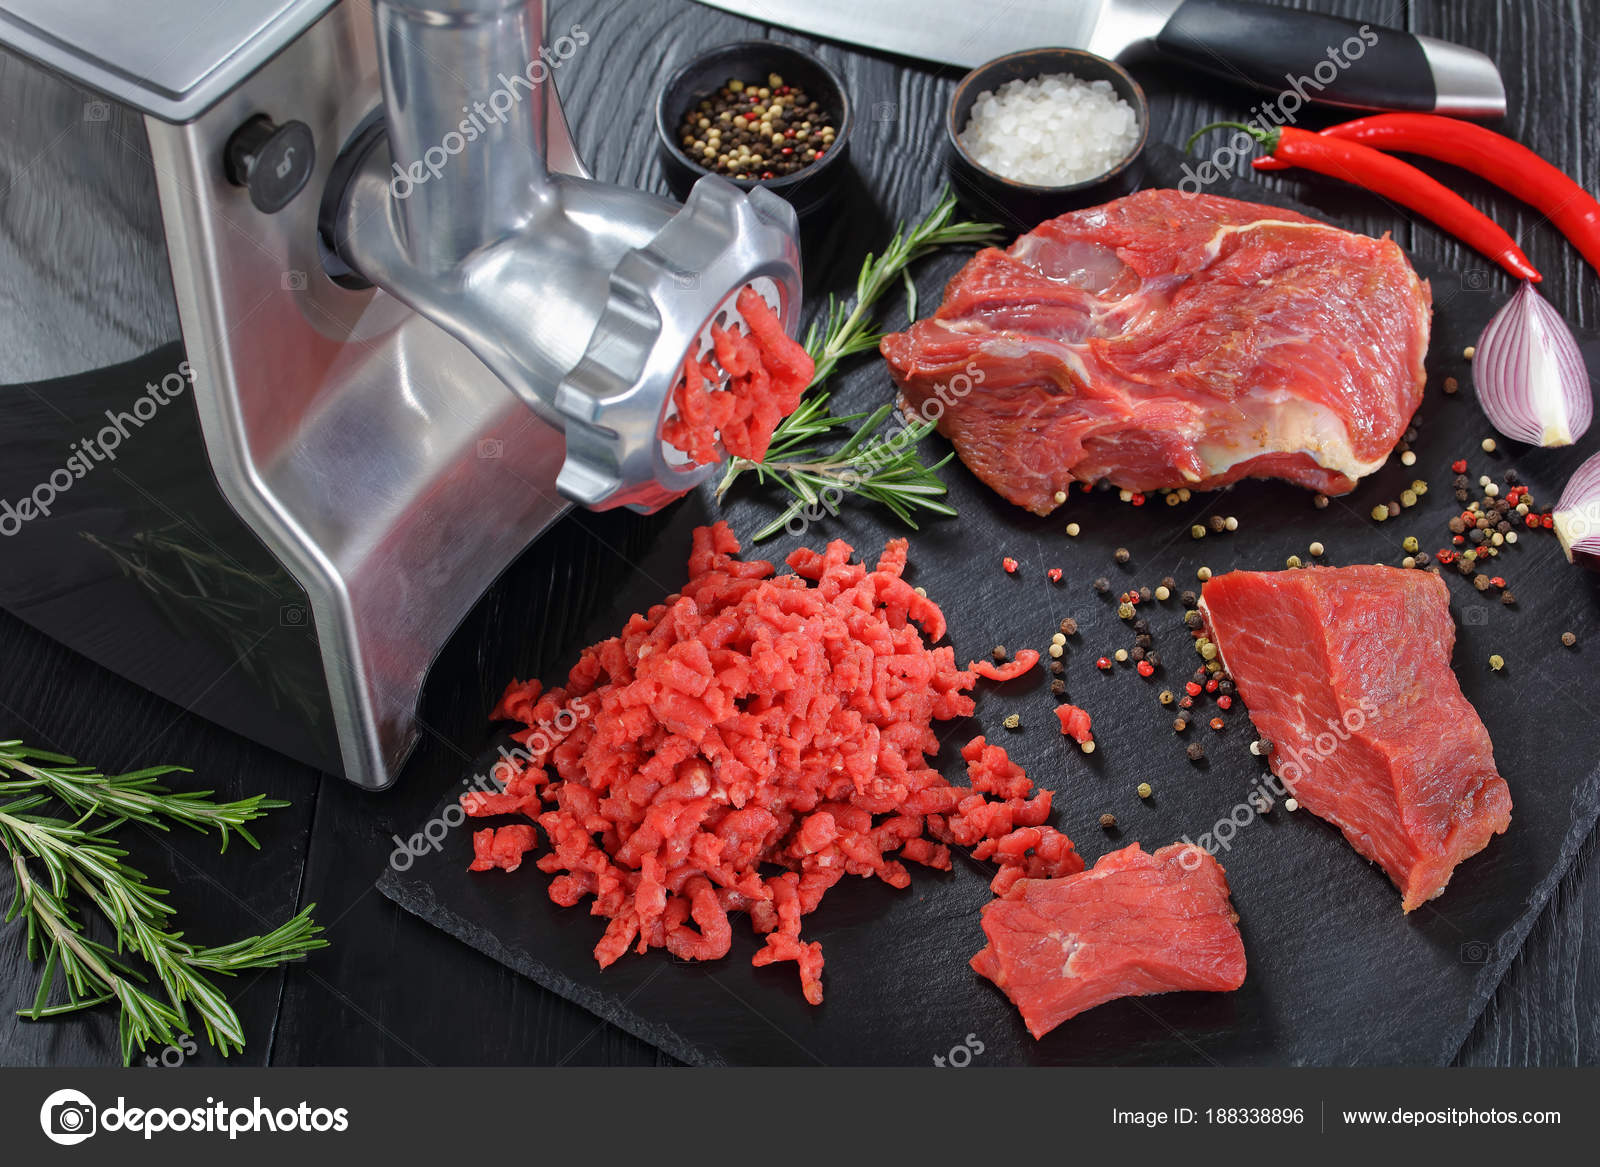 forcemeat essays Forcemeat definition, a mixture of finely chopped and seasoned foods, usually containing egg white, meat or fish, etc, used as a stuffing or served alone see more.